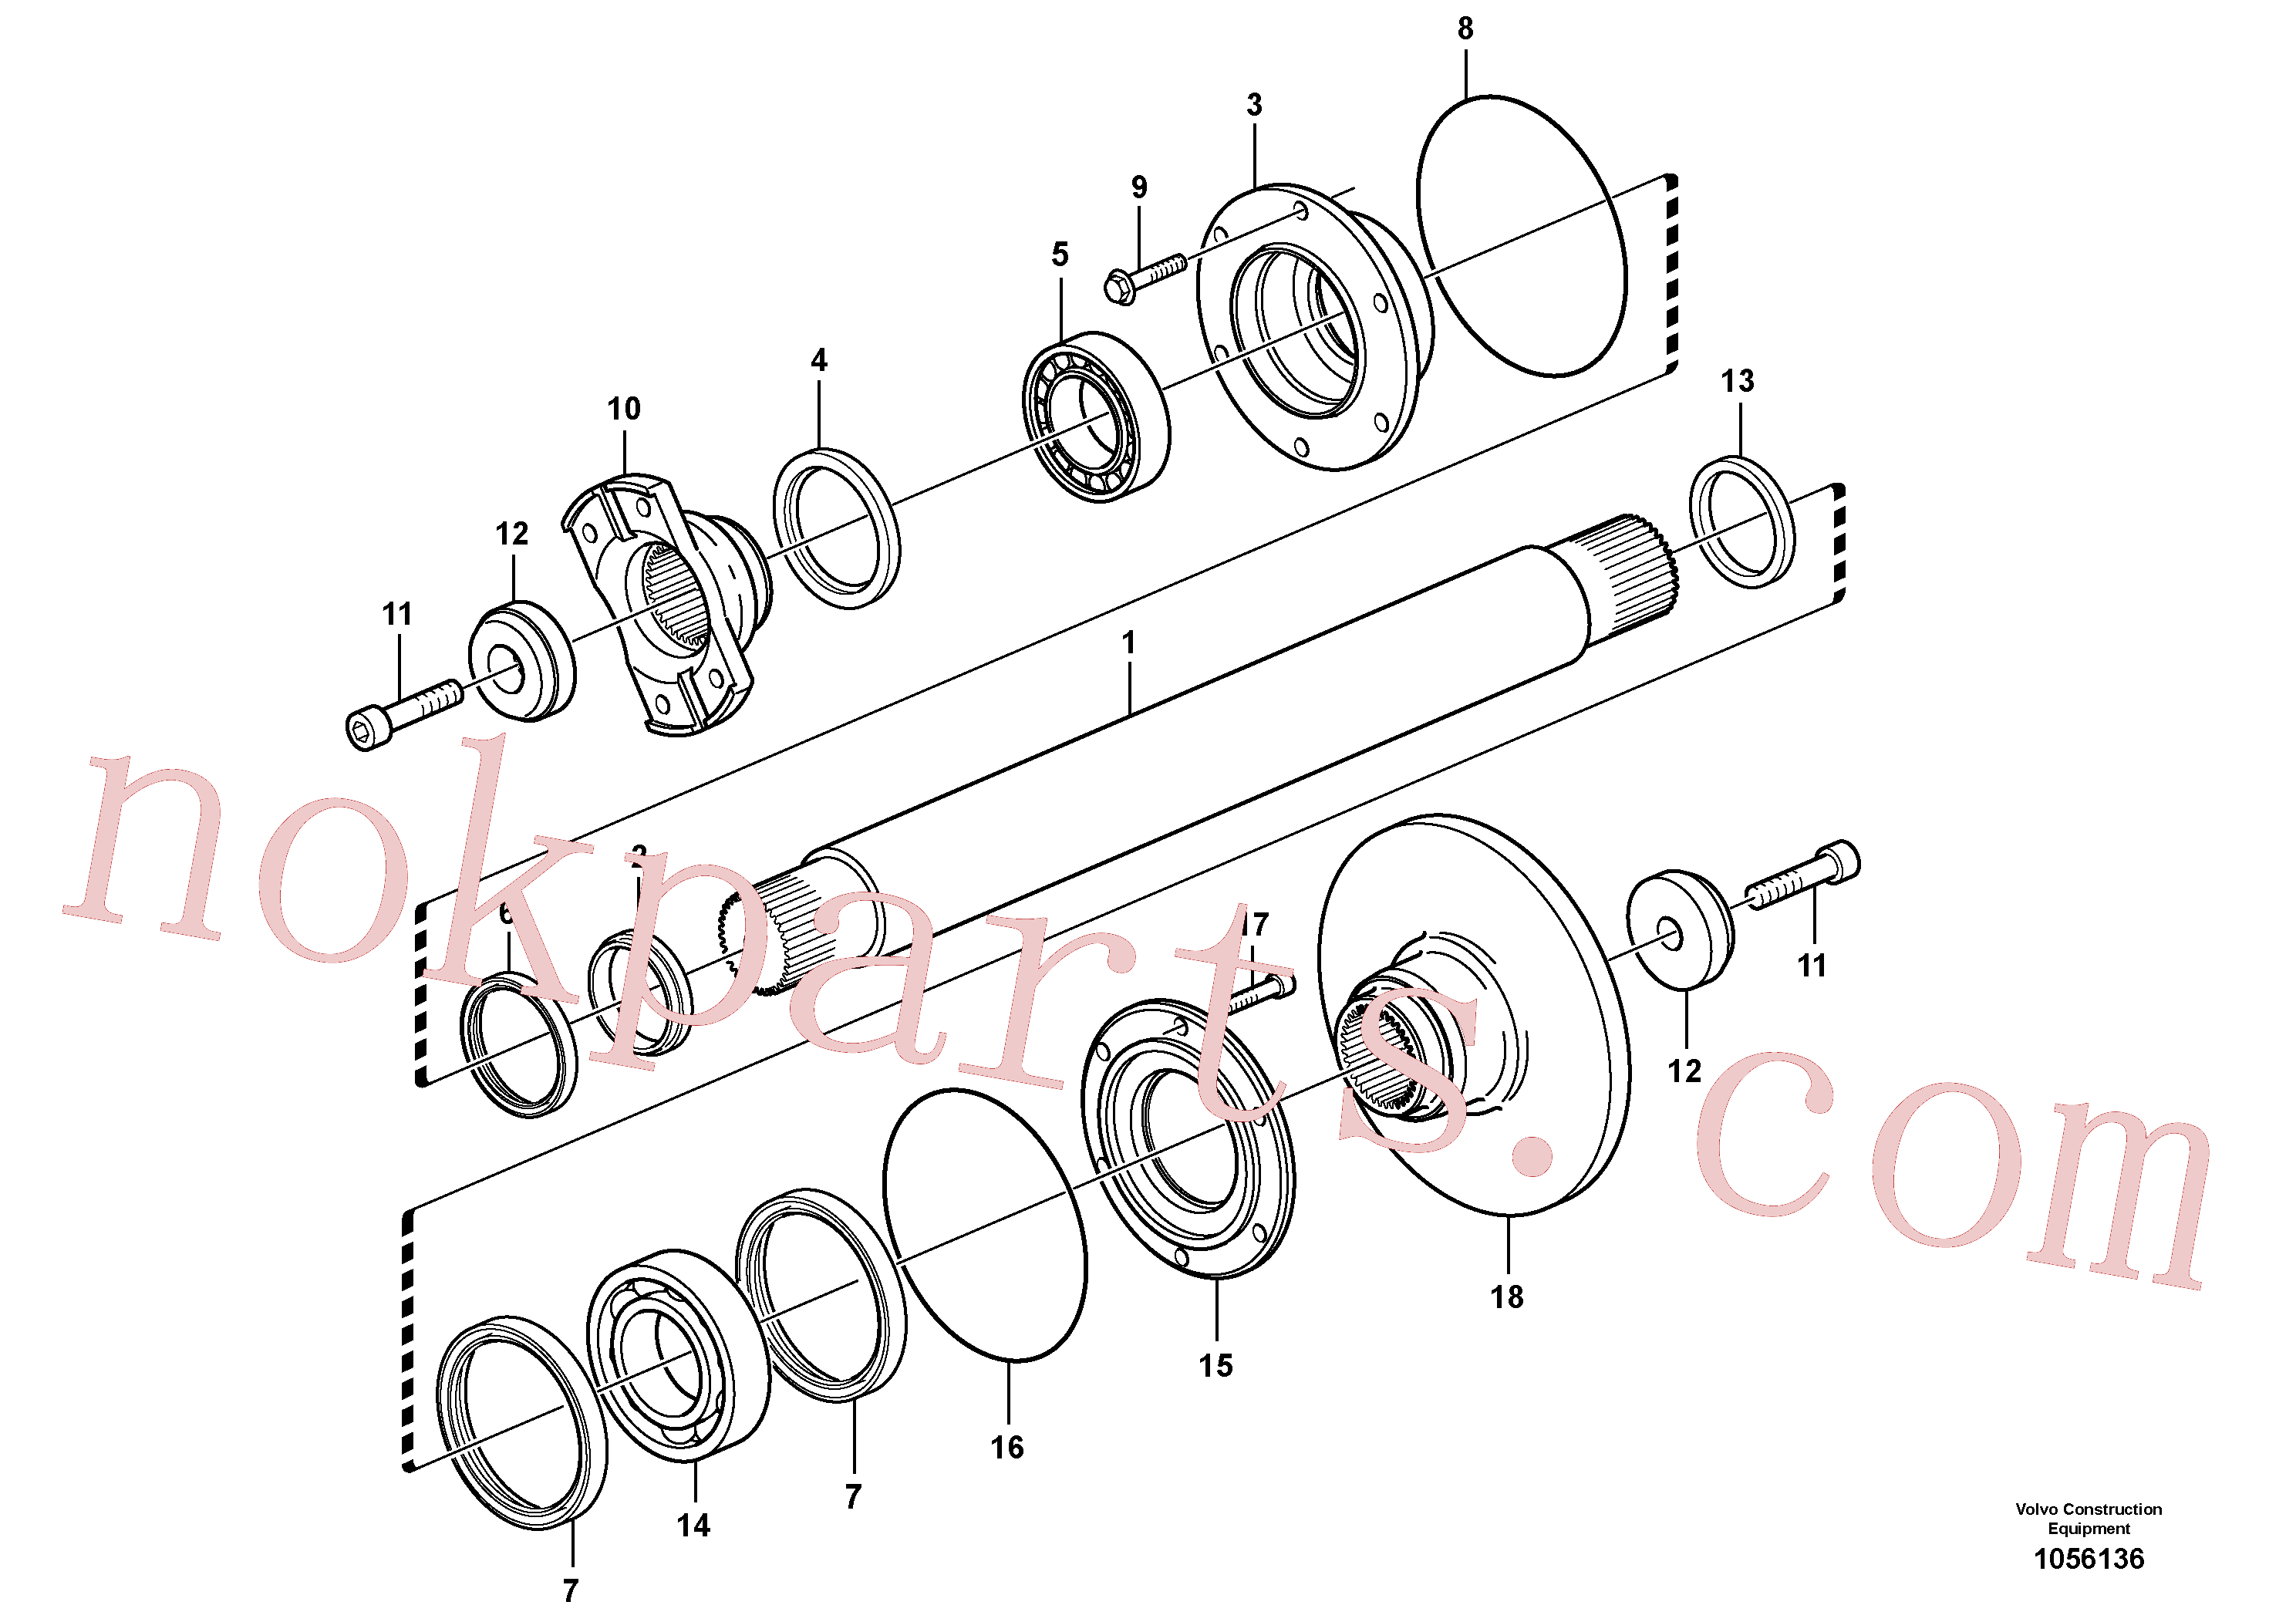 VOE965873 for Volvo Intermediate shaft(1056136 assembly)